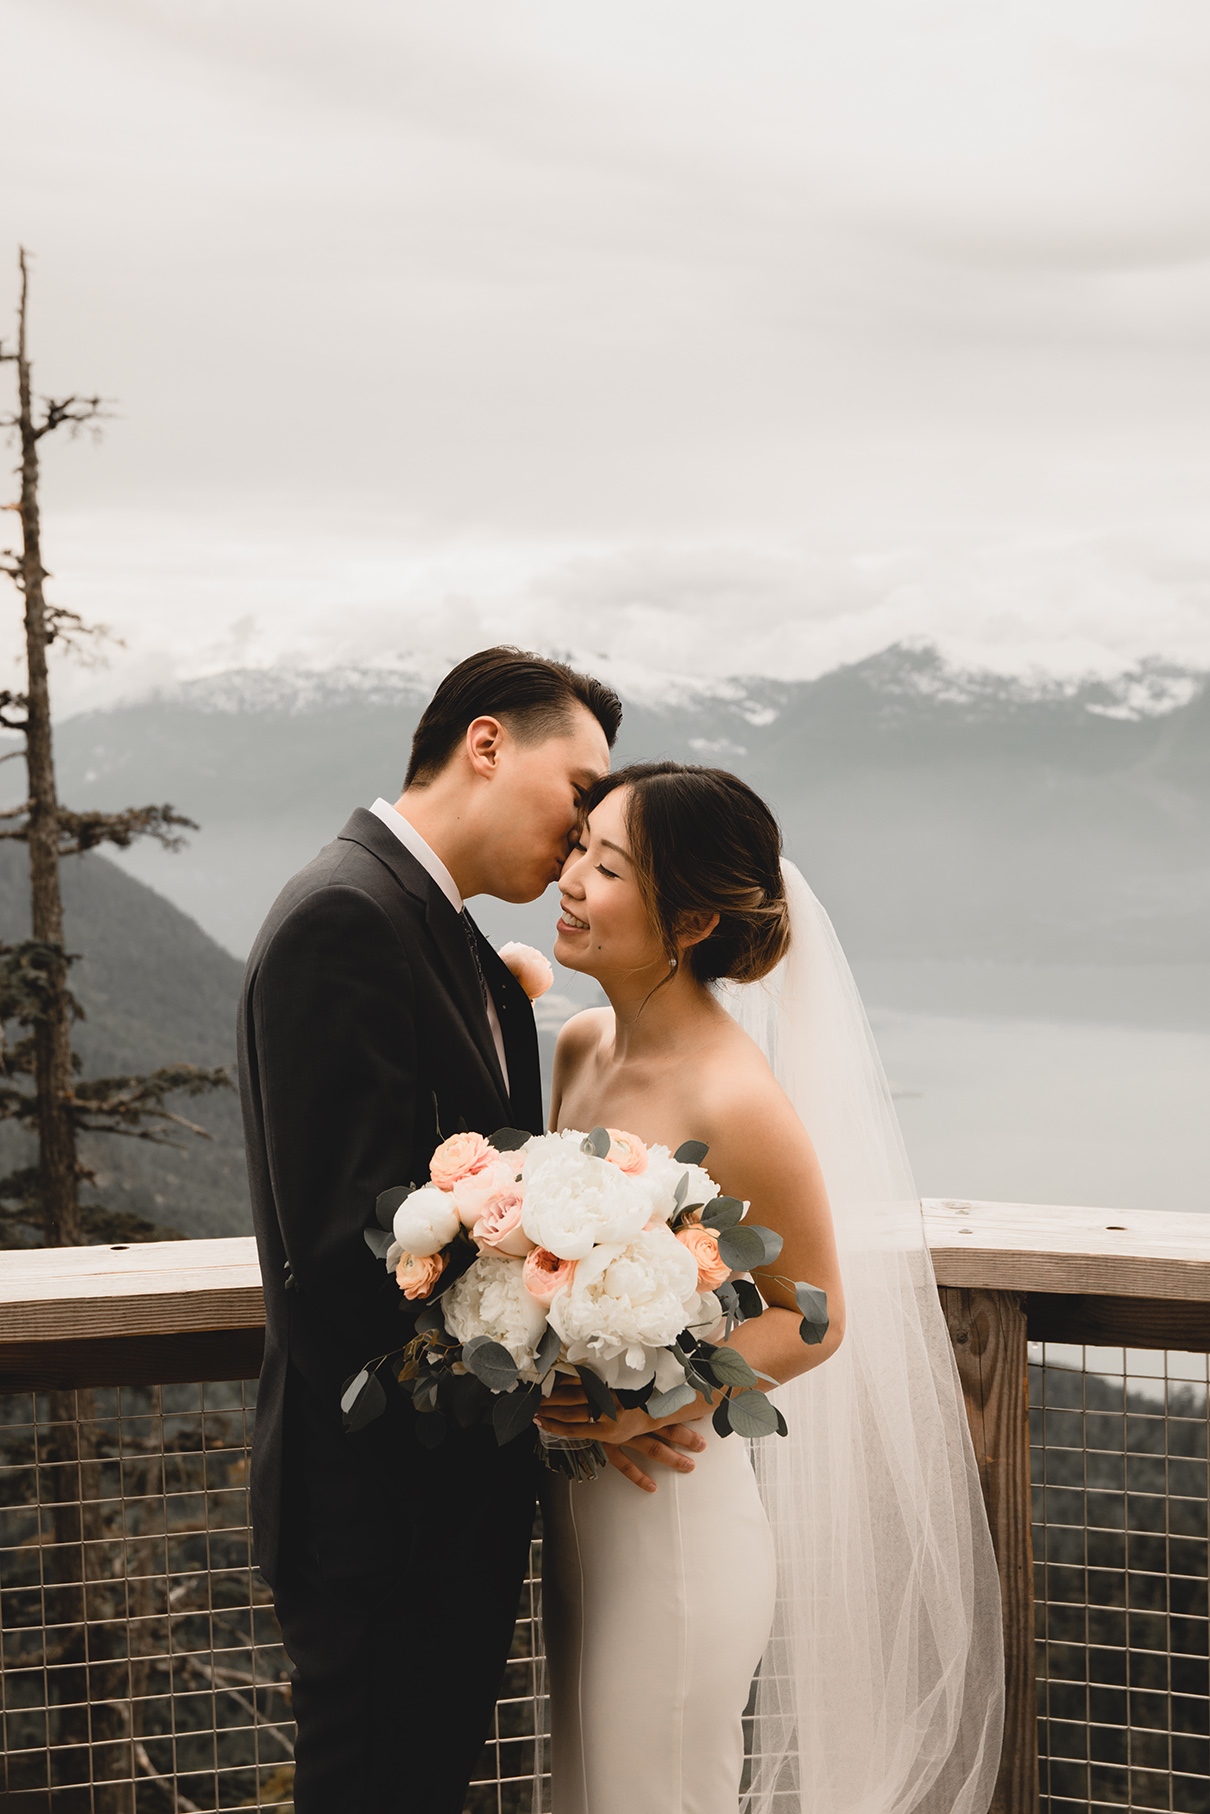 David + Esther - Squamish, BC Wedding Wedding Photography